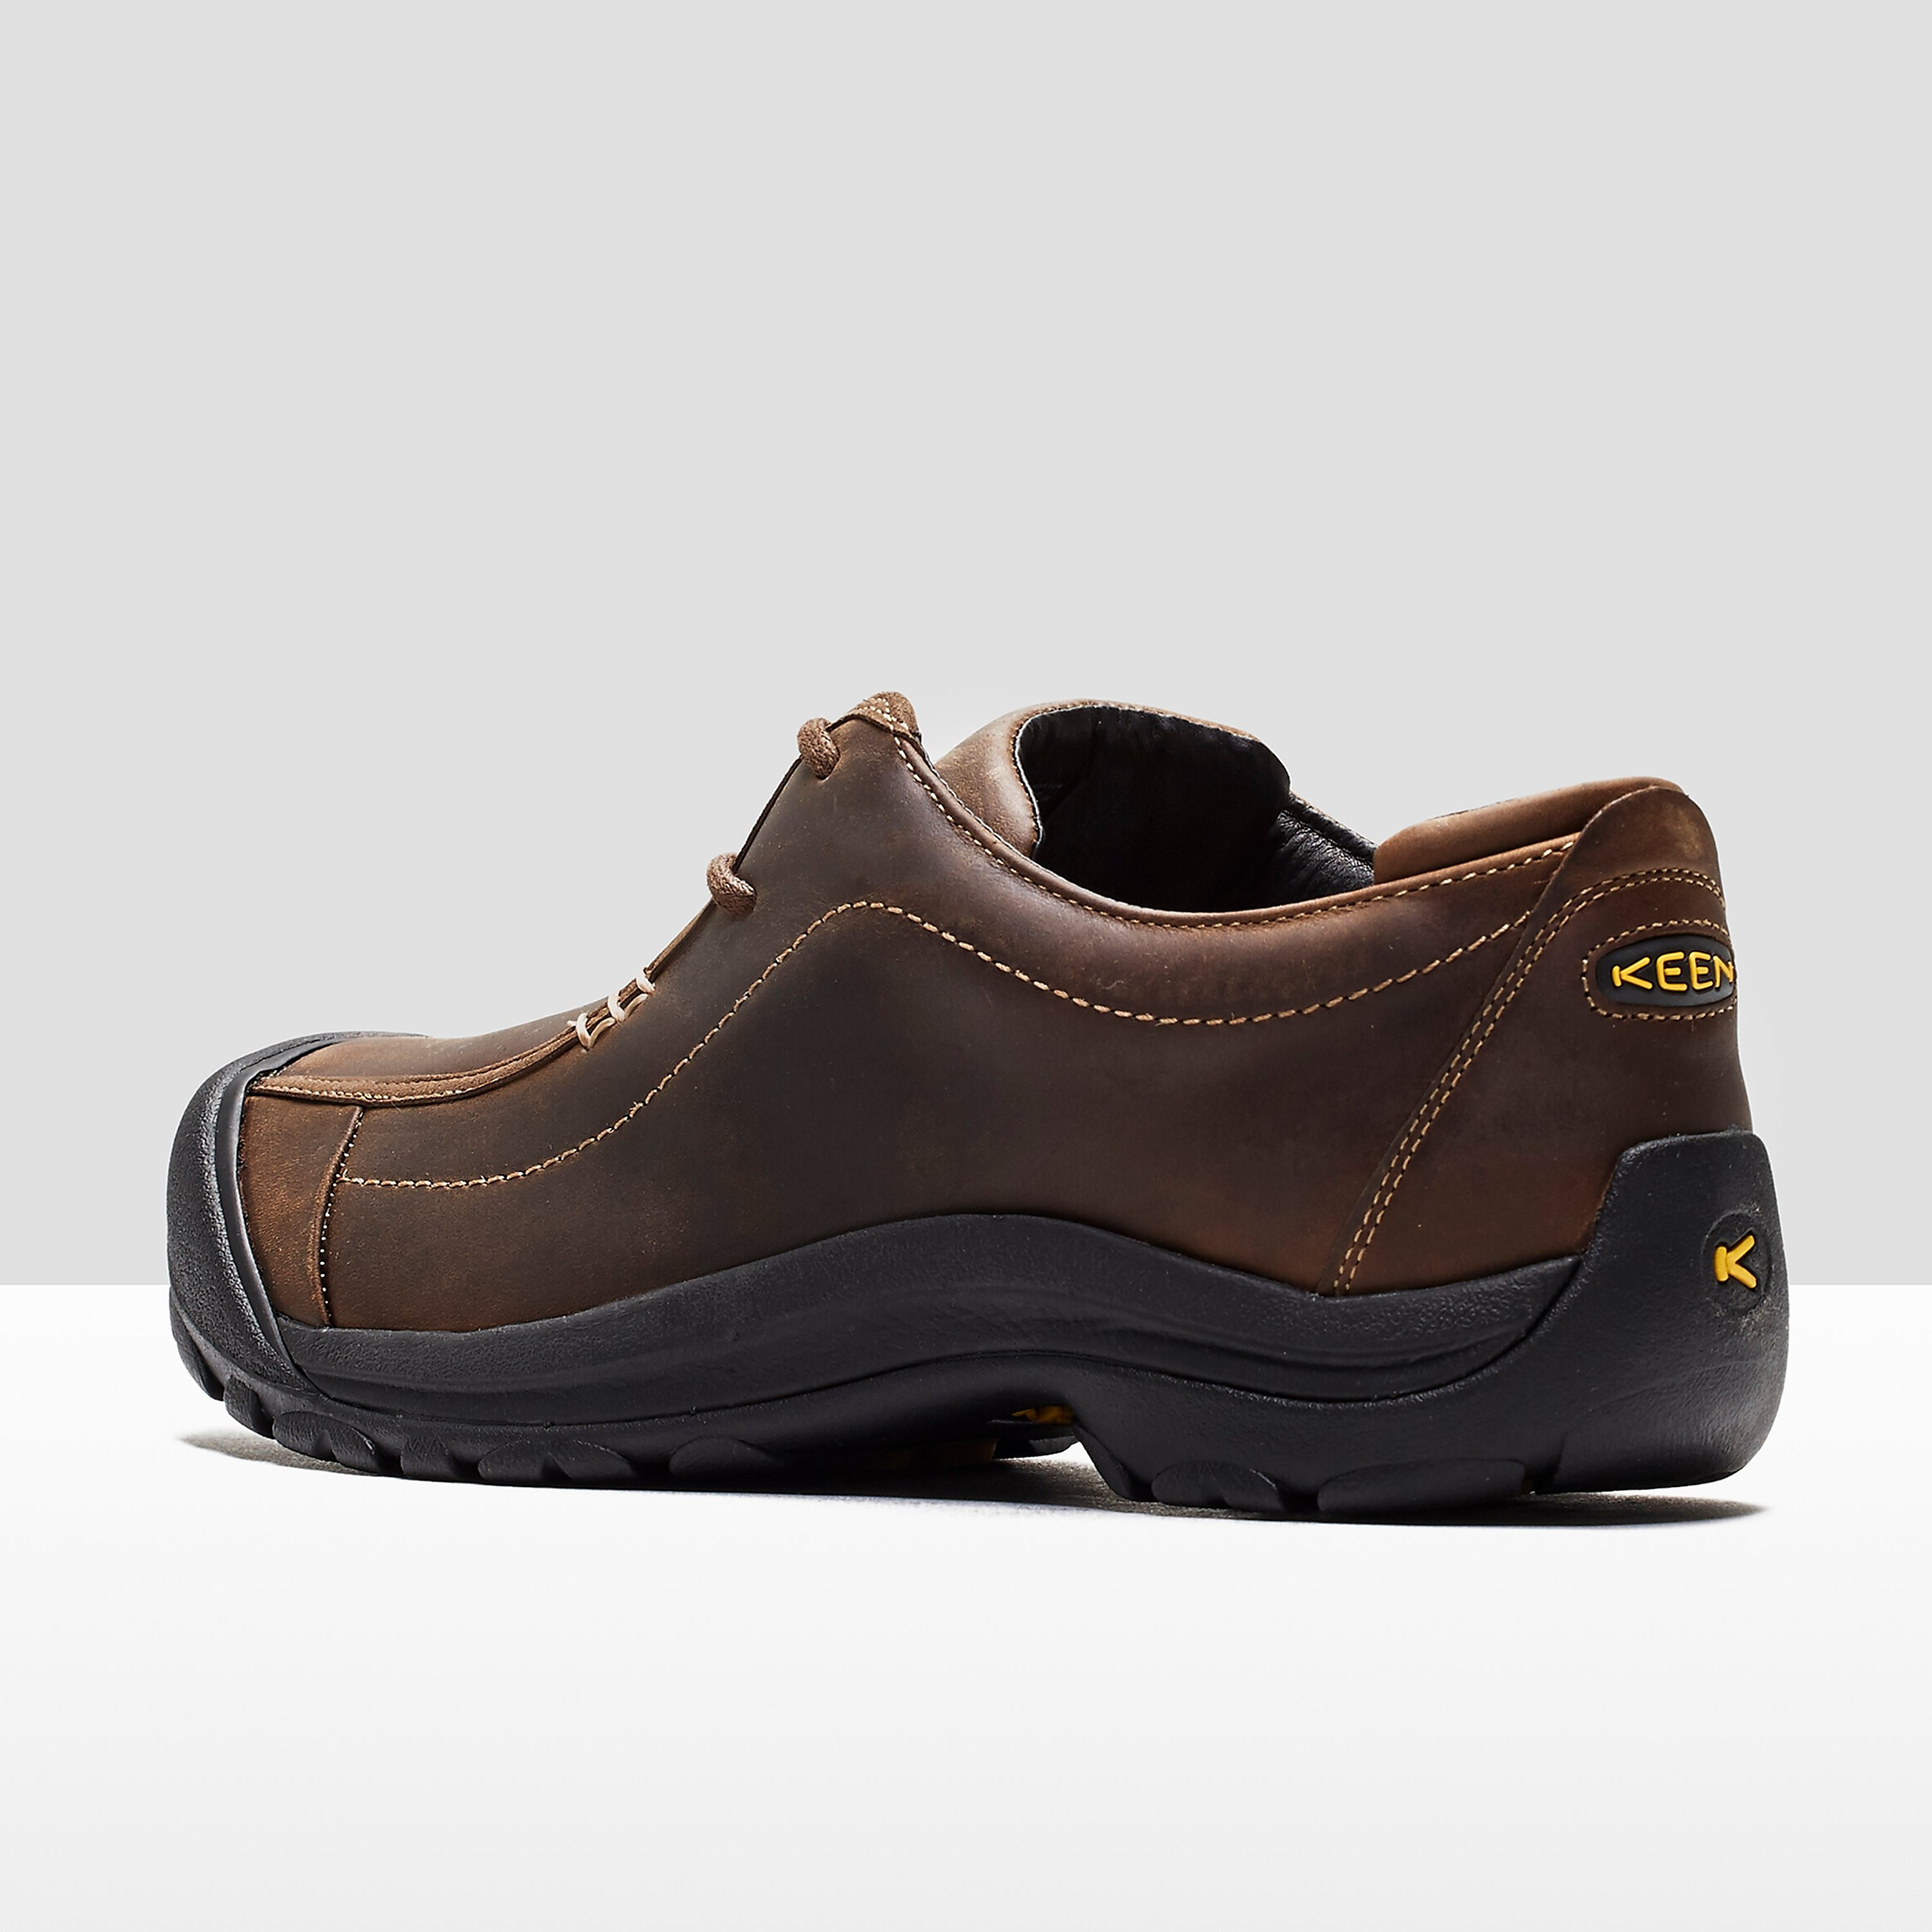 Keen Portsmouth Hiking Shoe